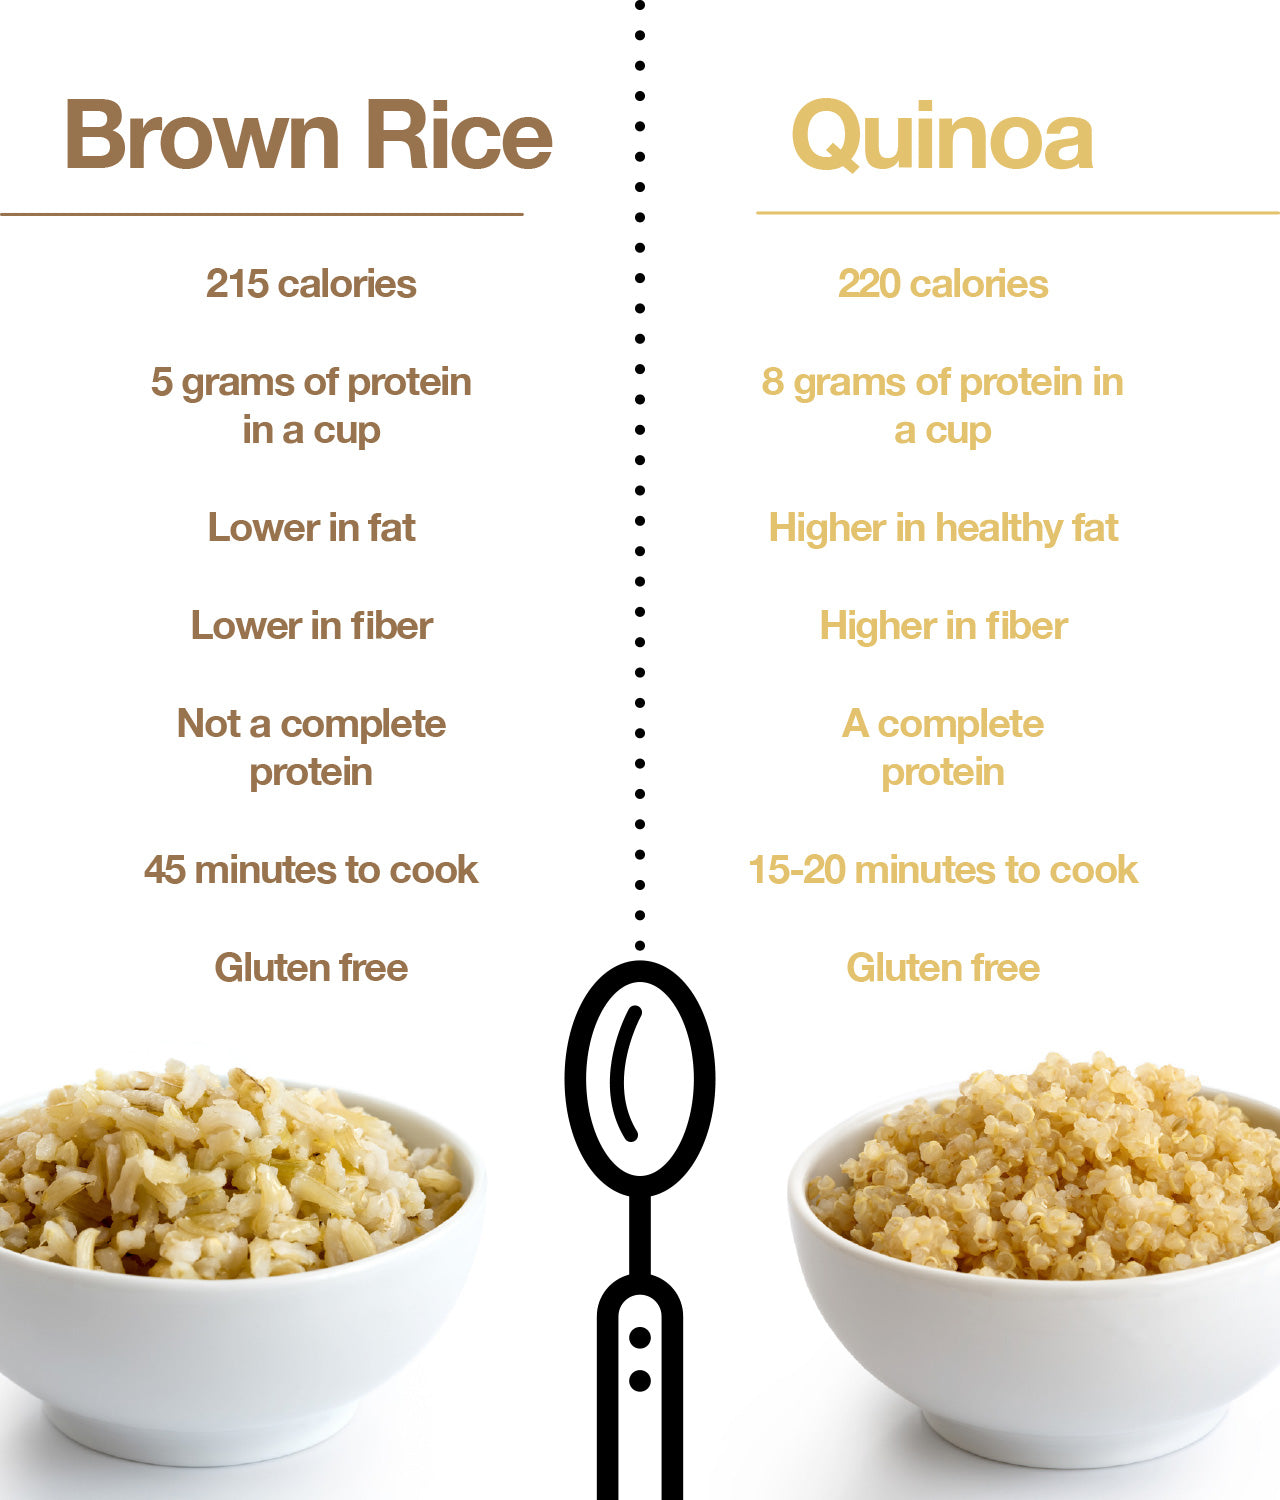 Is quinoa a complete protein?